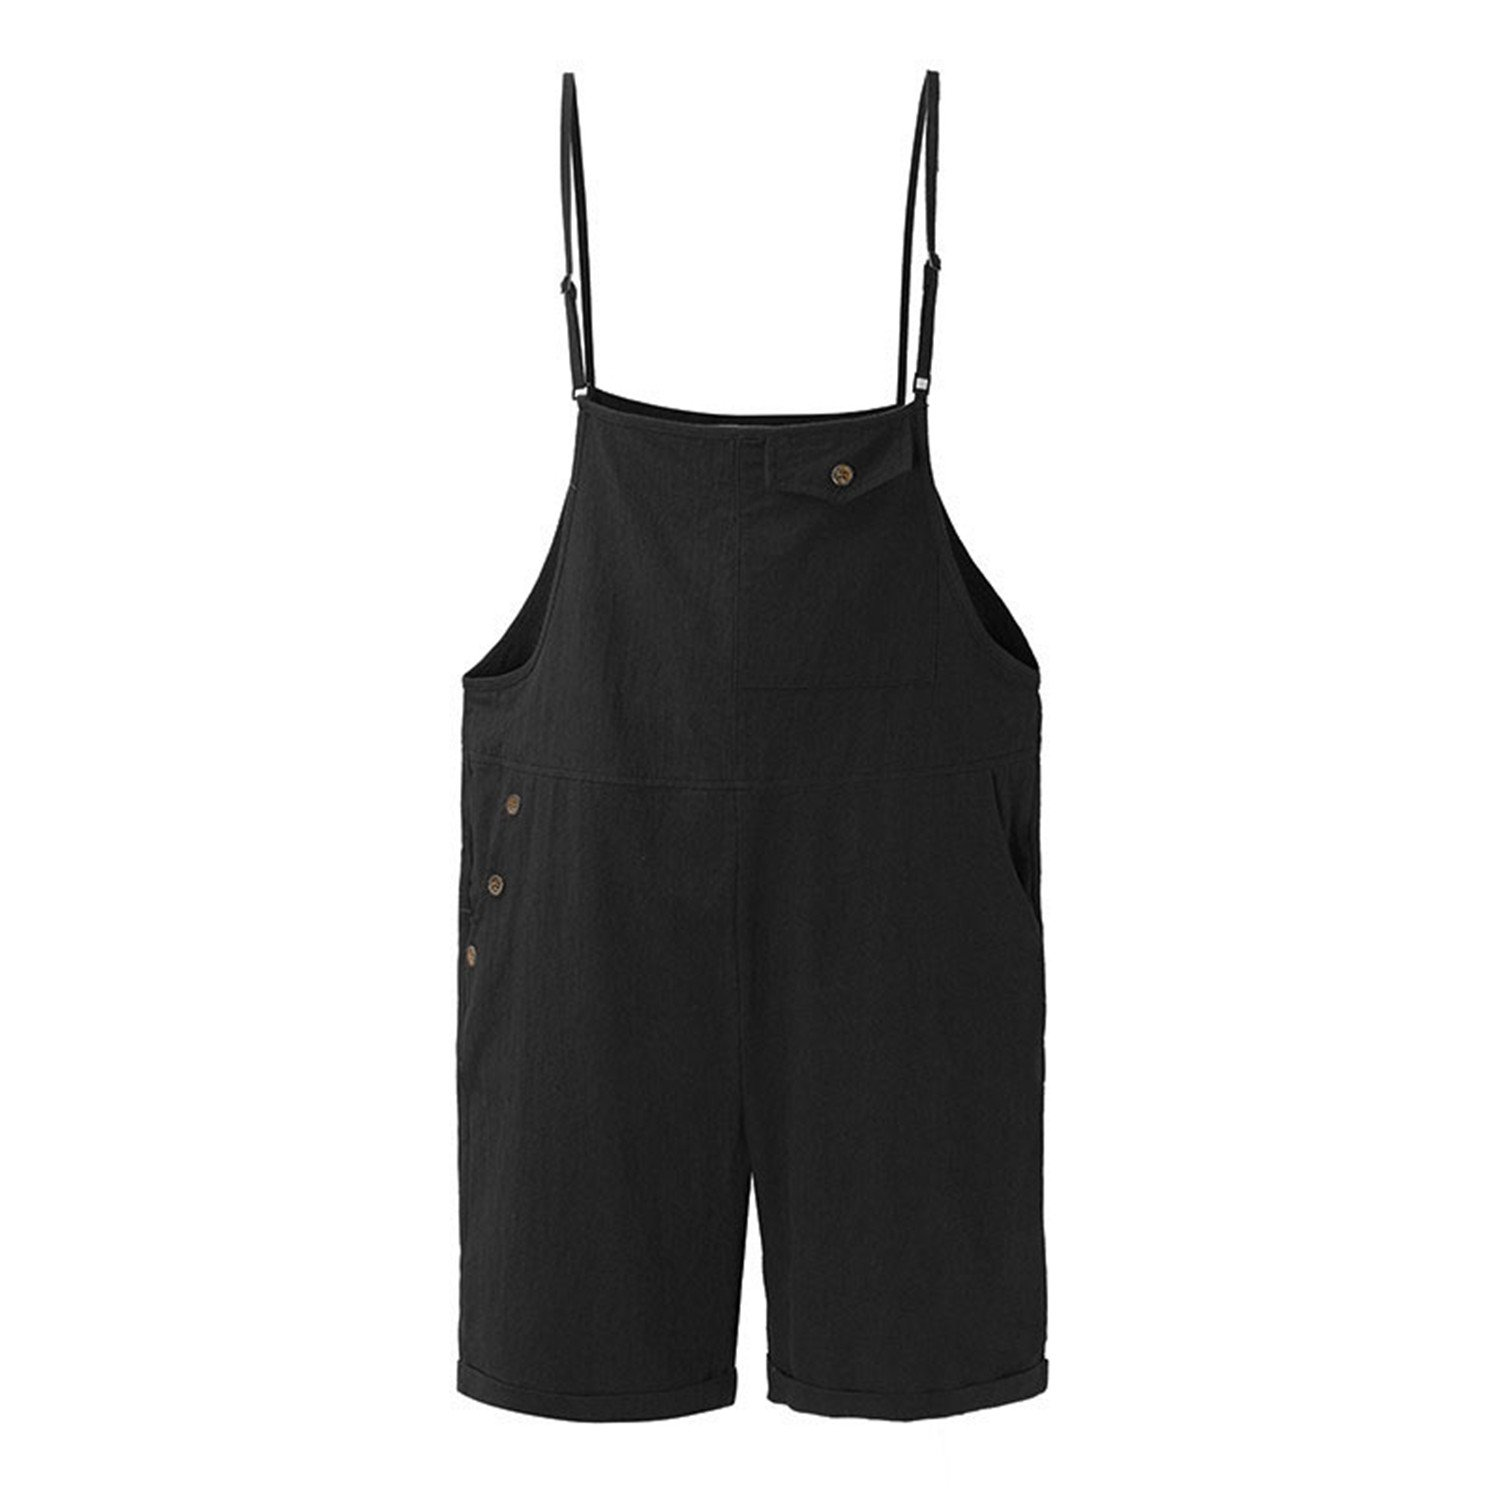 Ygosoon M-5XL Women Jumpsuits Rompers Wide Leg Playsuits Dungarees Black XL